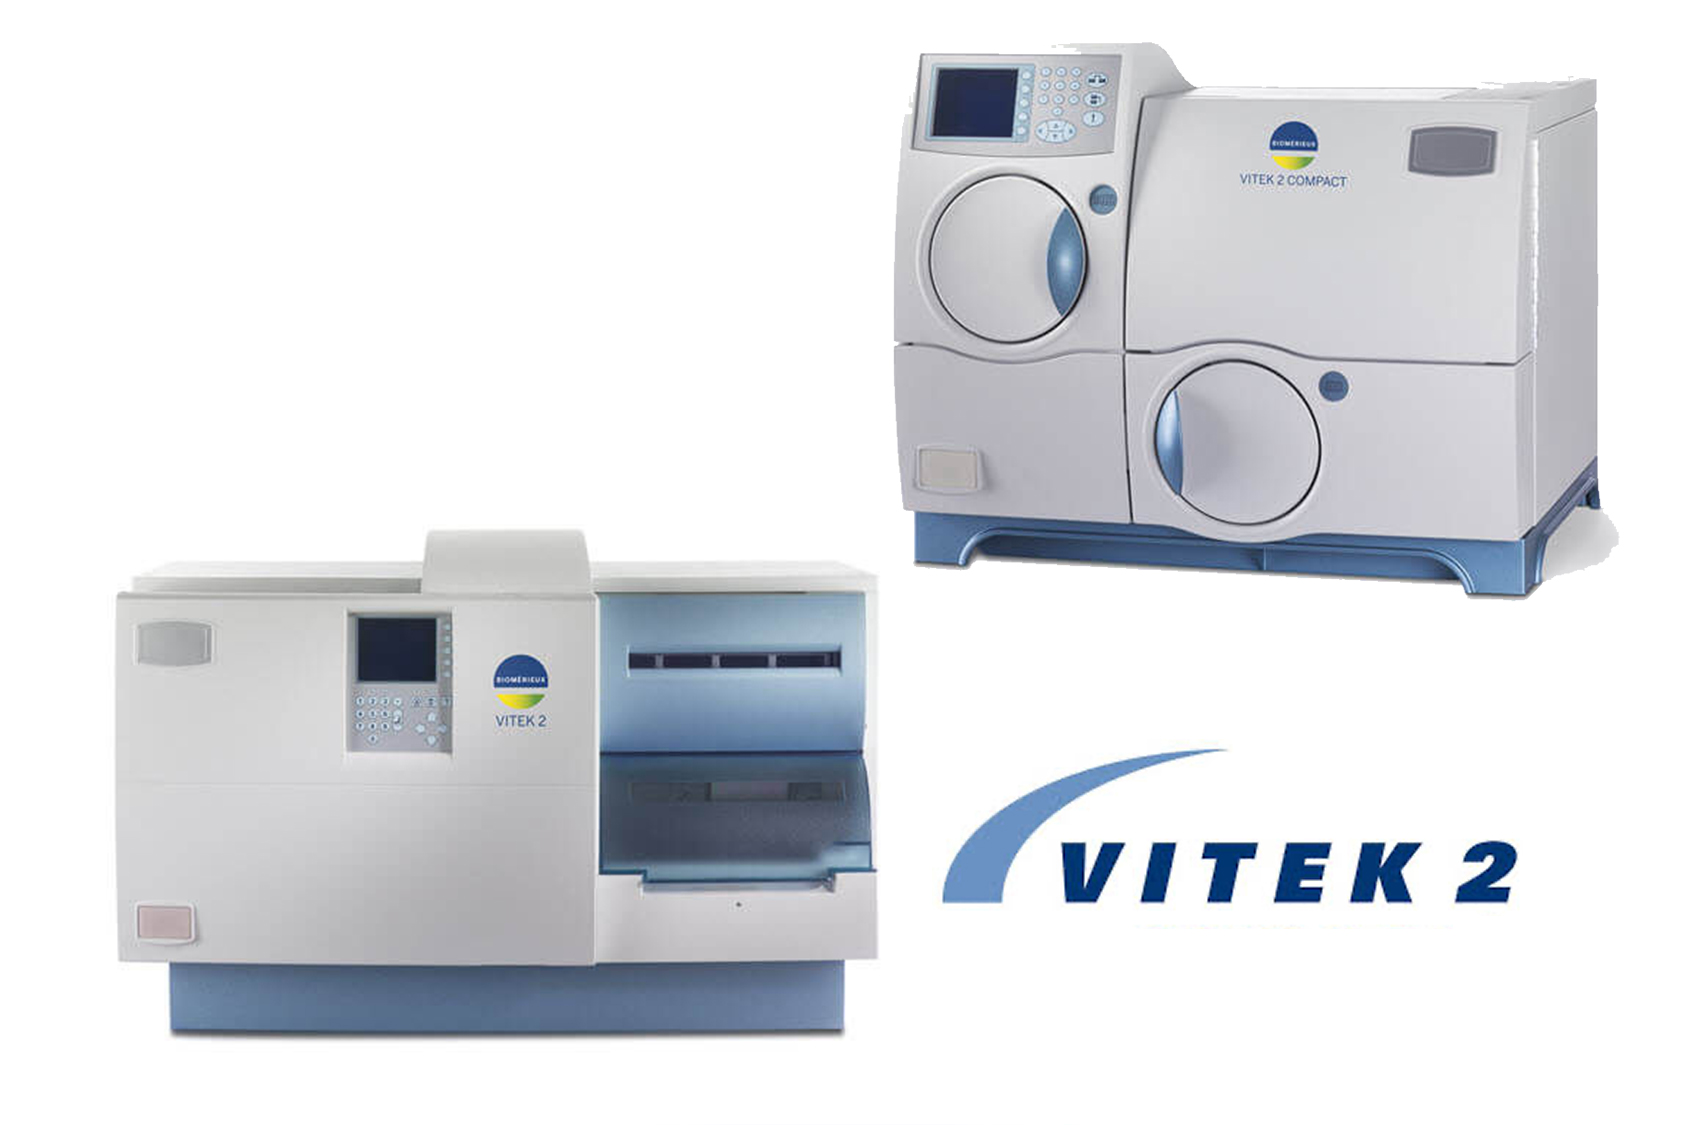 Biomerieux - Vitek 2 SystemMICROBIAL DETECTION SYSTEMMICROBIAL IDENTIFICATION AND ANTIBIOTIC SUSCEPTIBILITY TESTING SYSTEMProduct Page | More